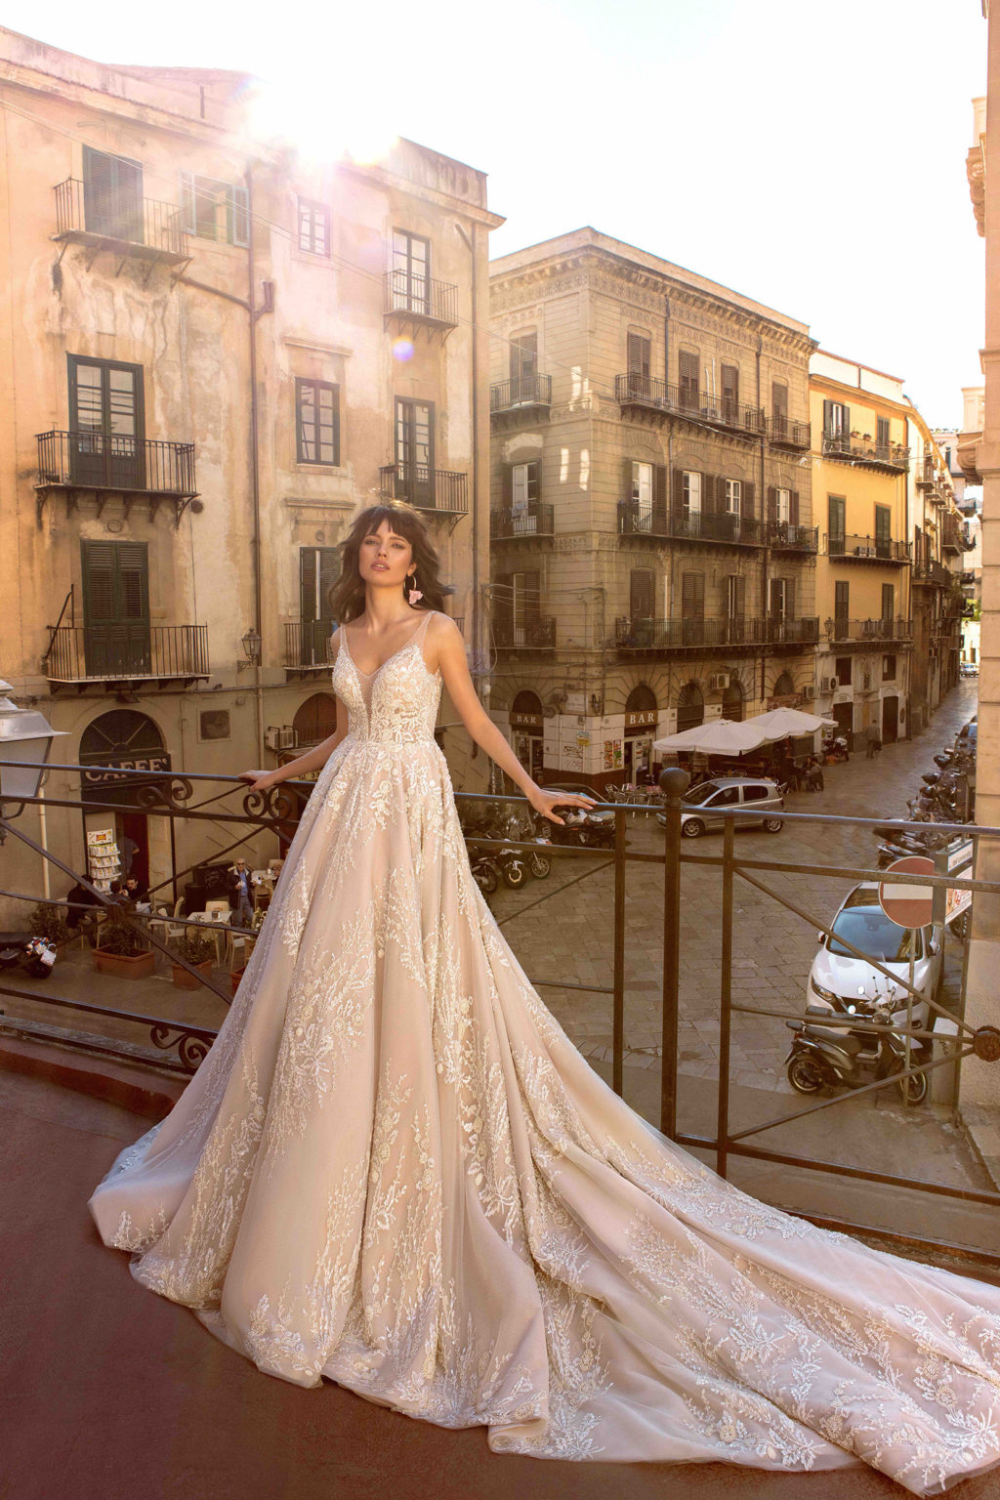 Off The Rack Clearance Gowns Frisco In 2020 Bride Dress Wedding Dresses Wedding Gowns